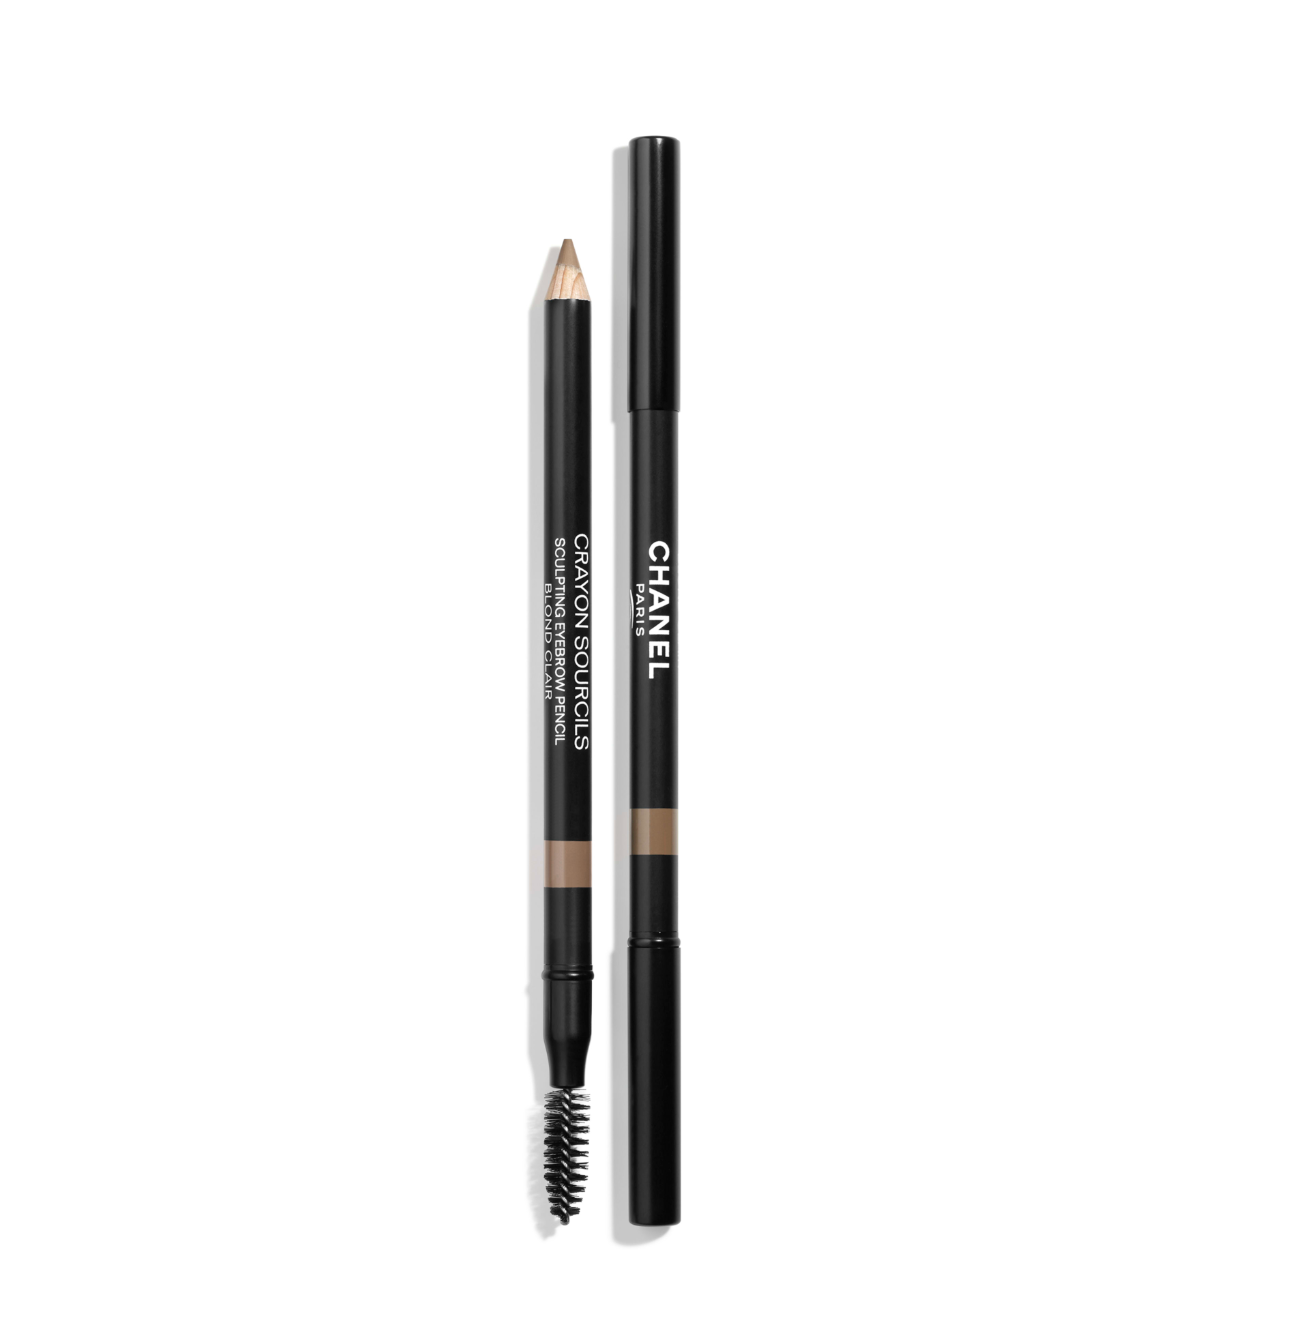 Chanel Crayon Sourcils #10